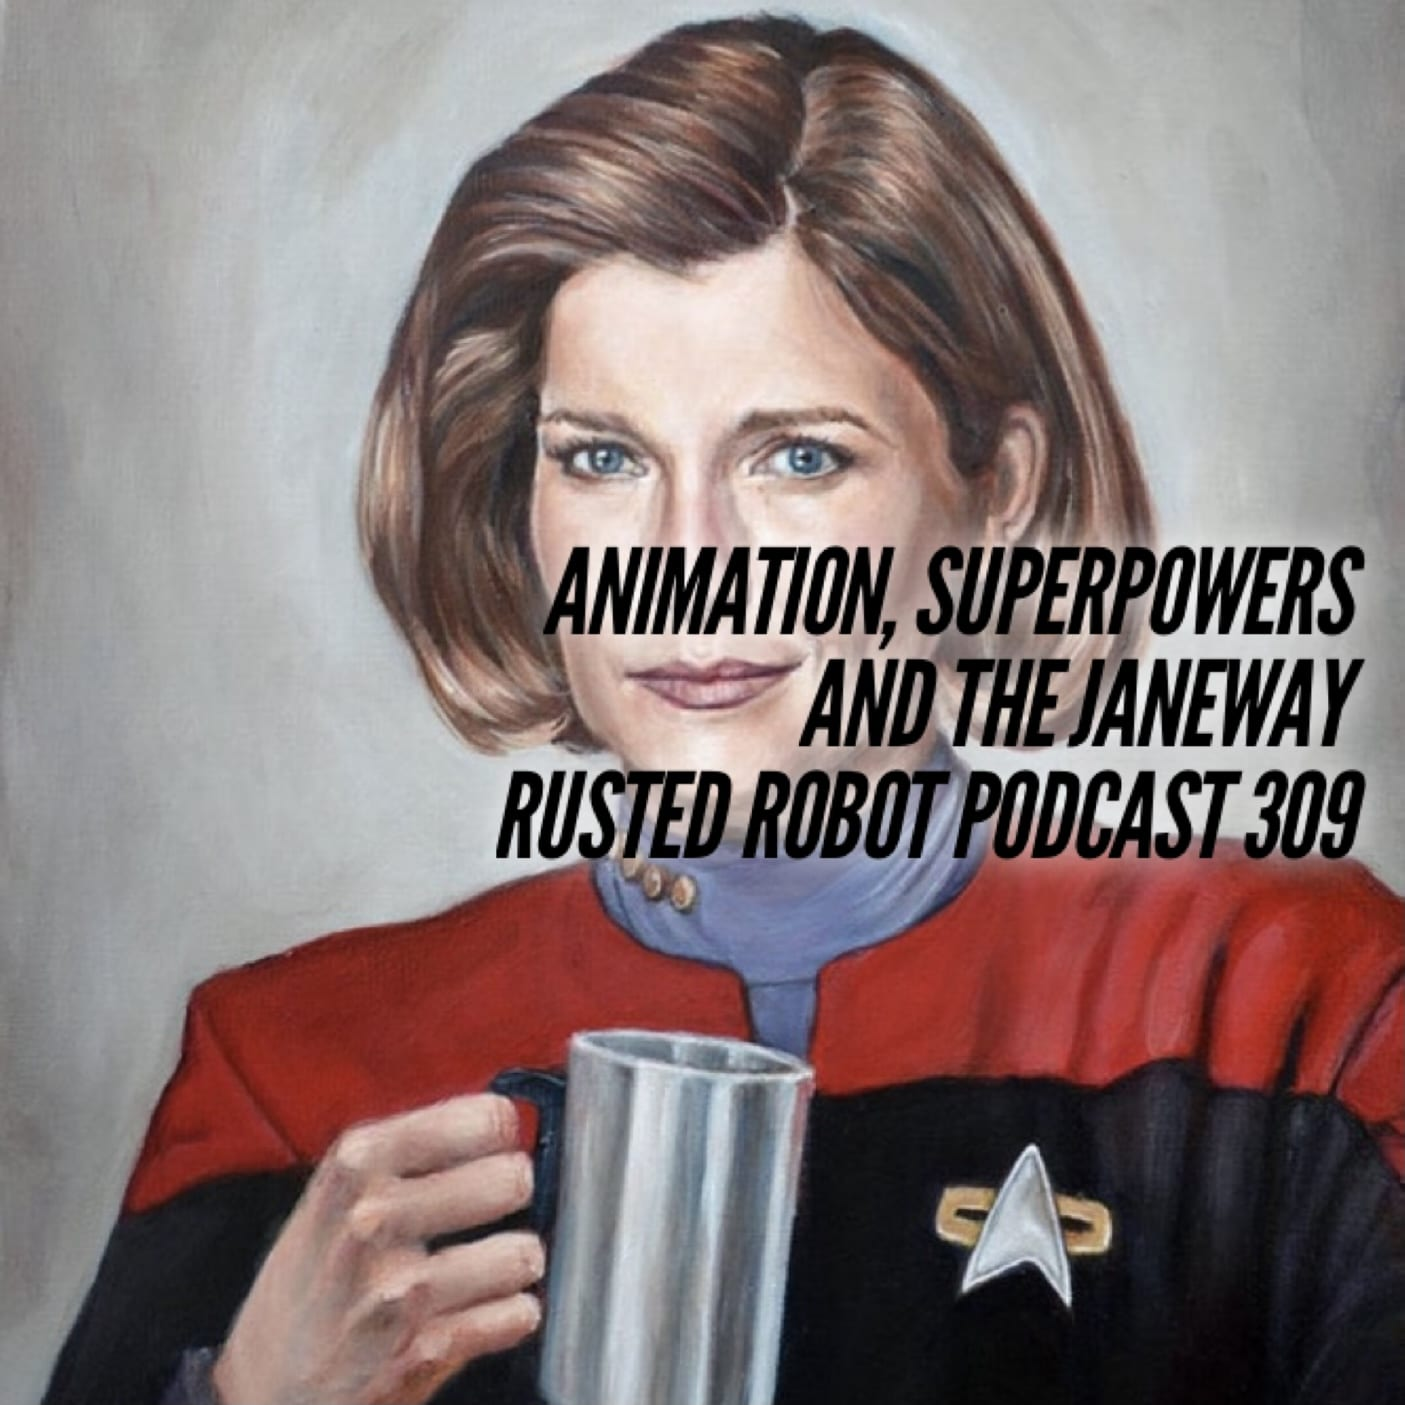 Animation, Superpowers and the Janeway